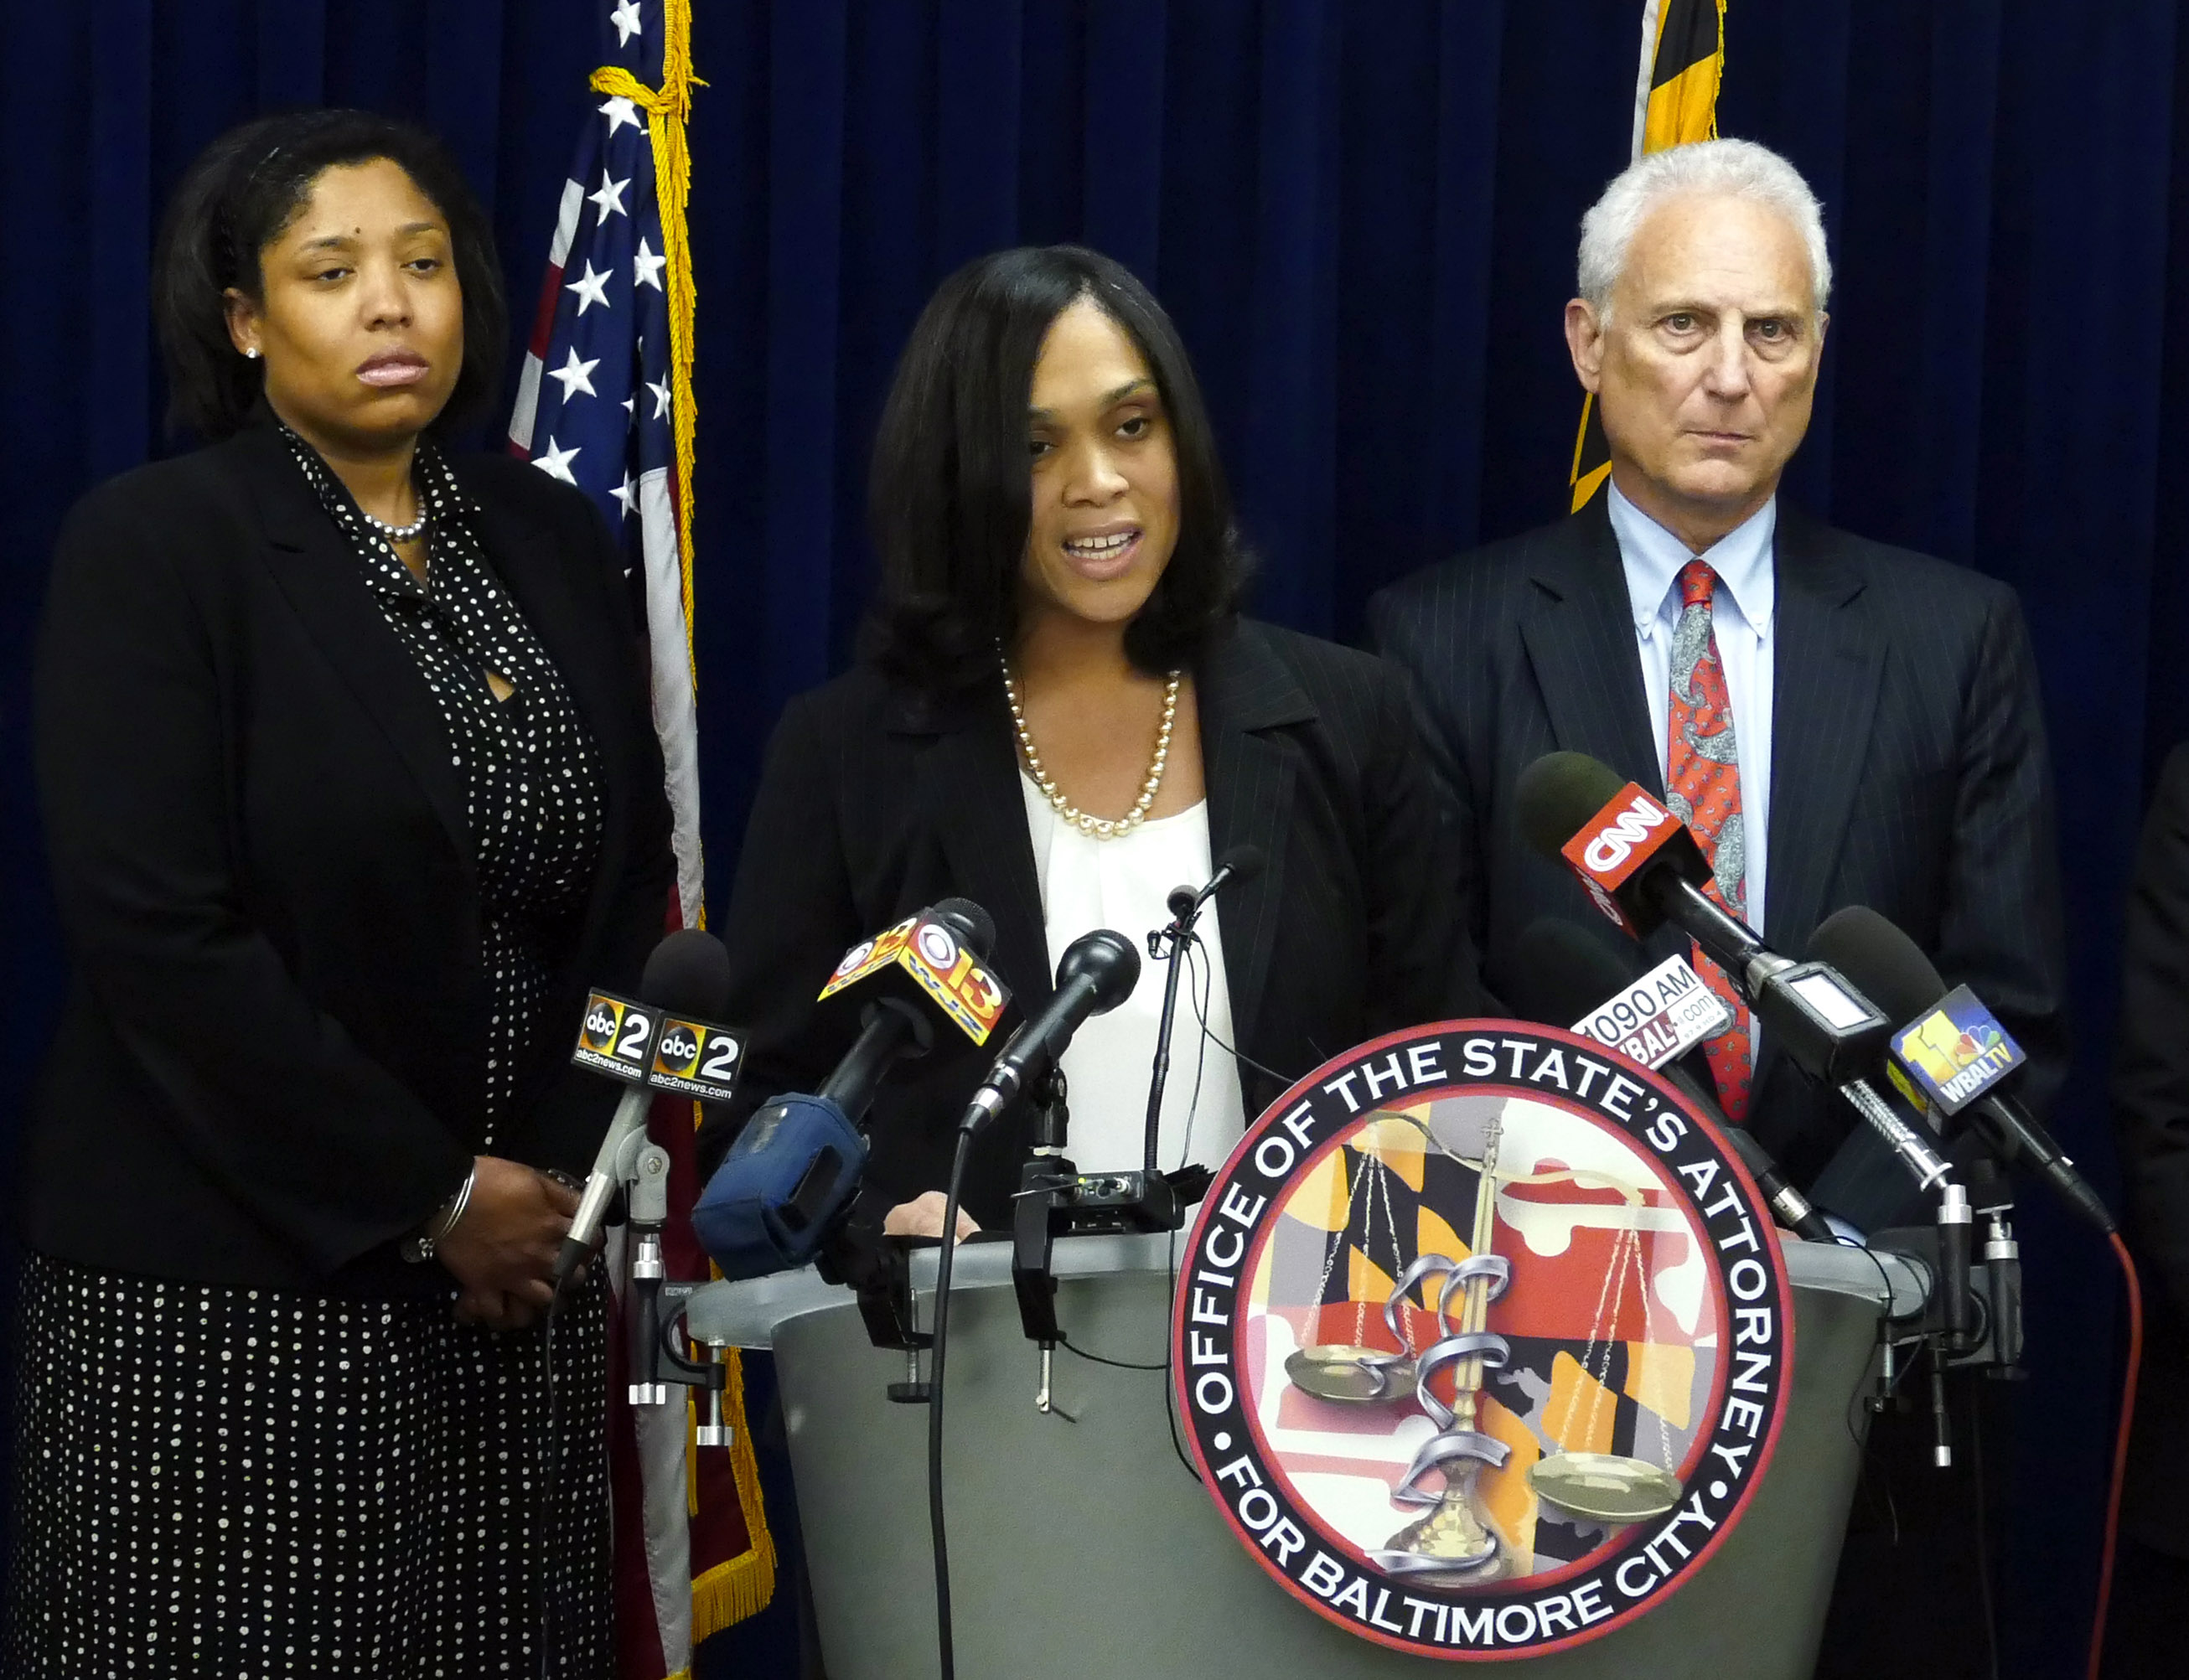 Judge to dismiss some claims in Baltimore officers' lawsuit